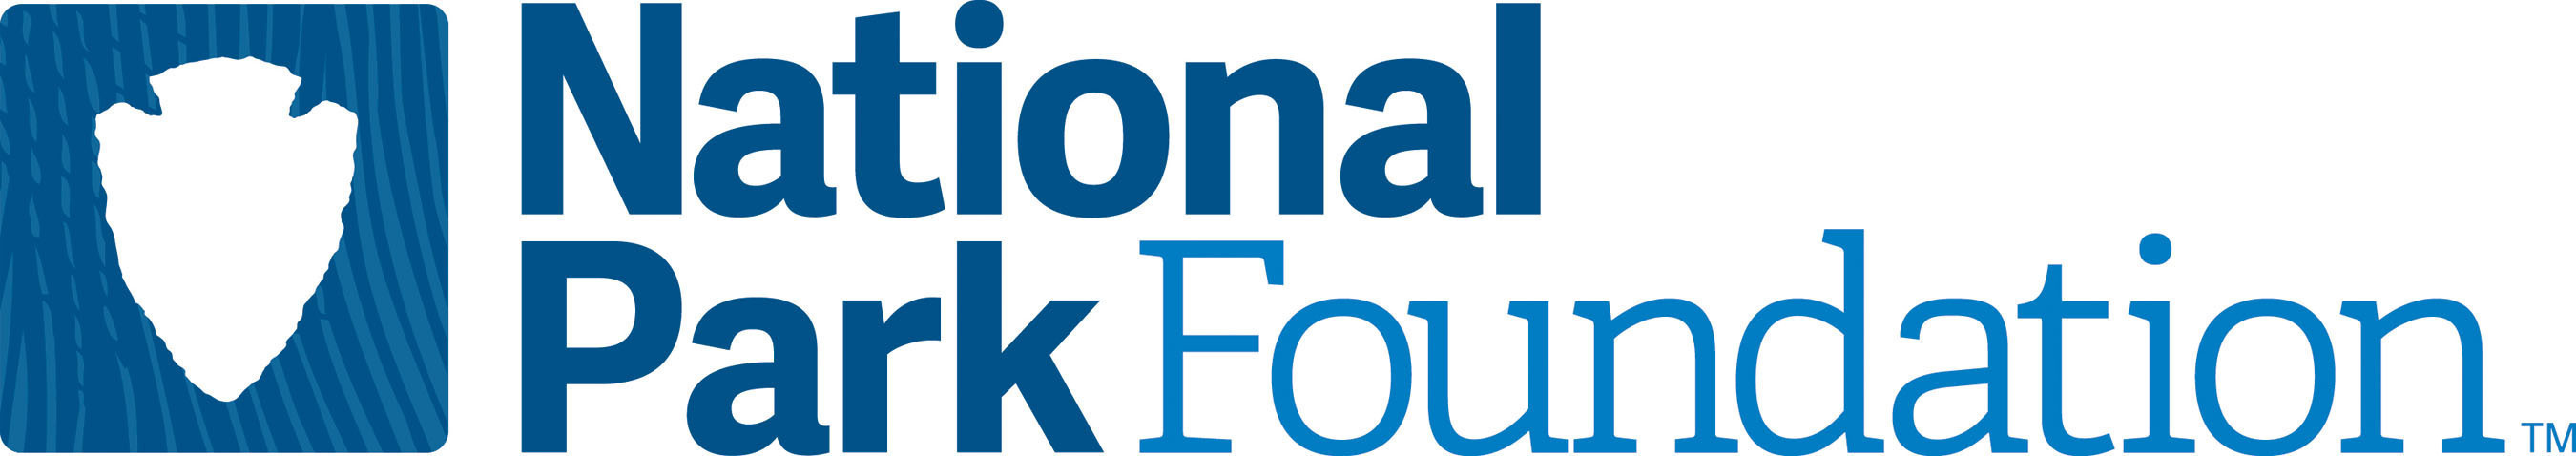 National Park Foundation.